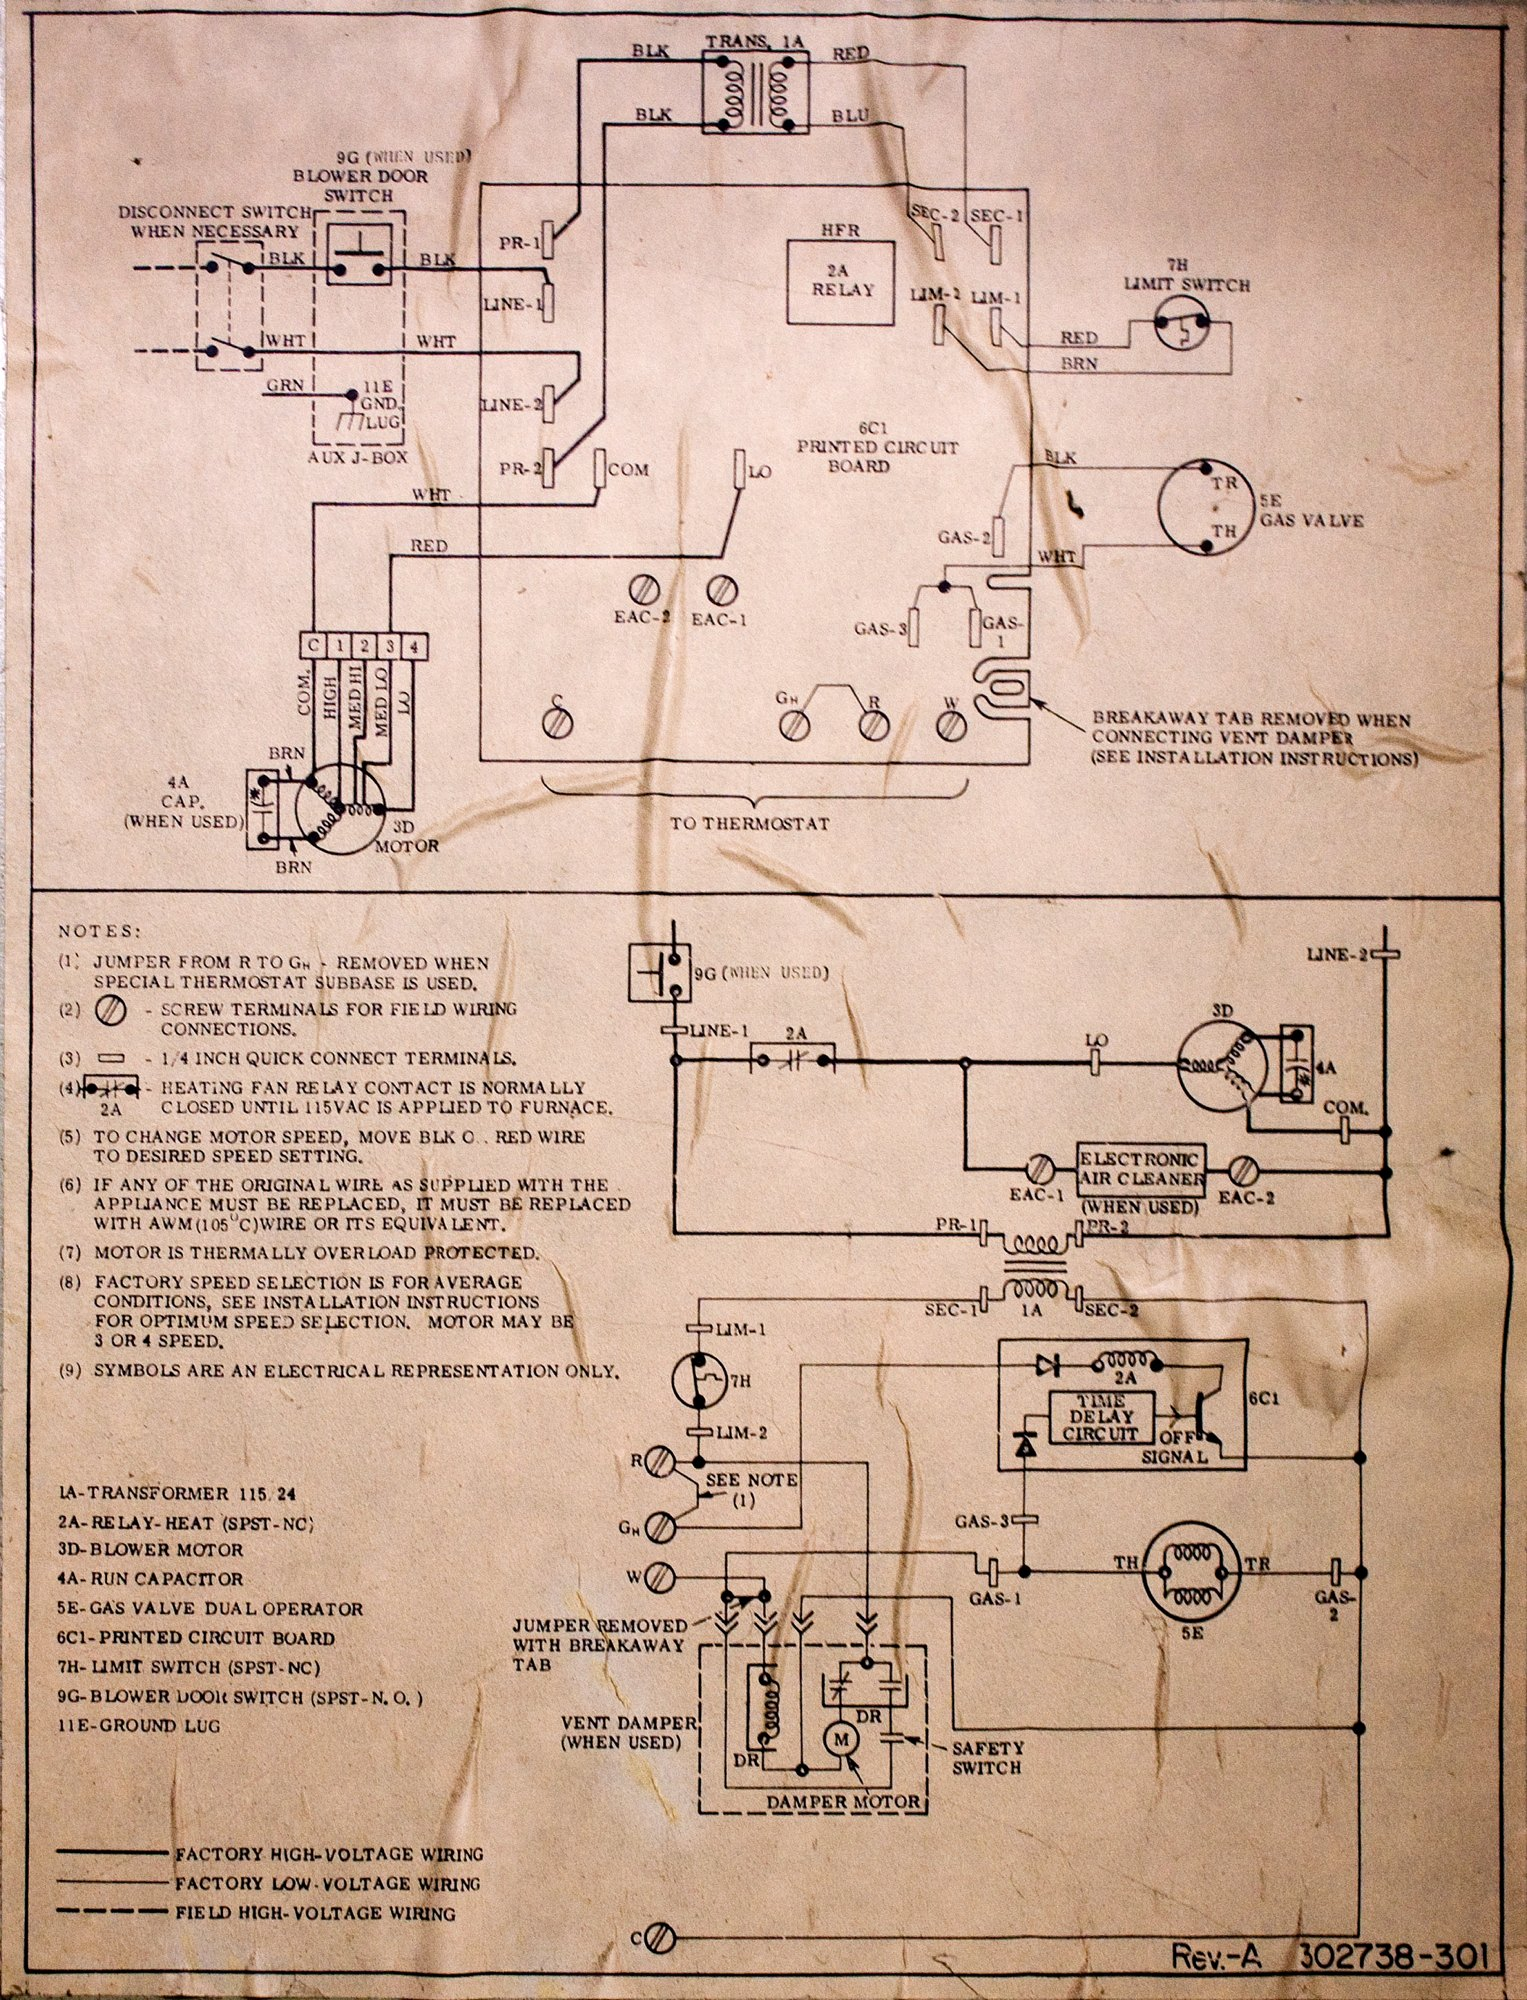 robertshaw 780 715 wiring diagram   33 wiring diagram